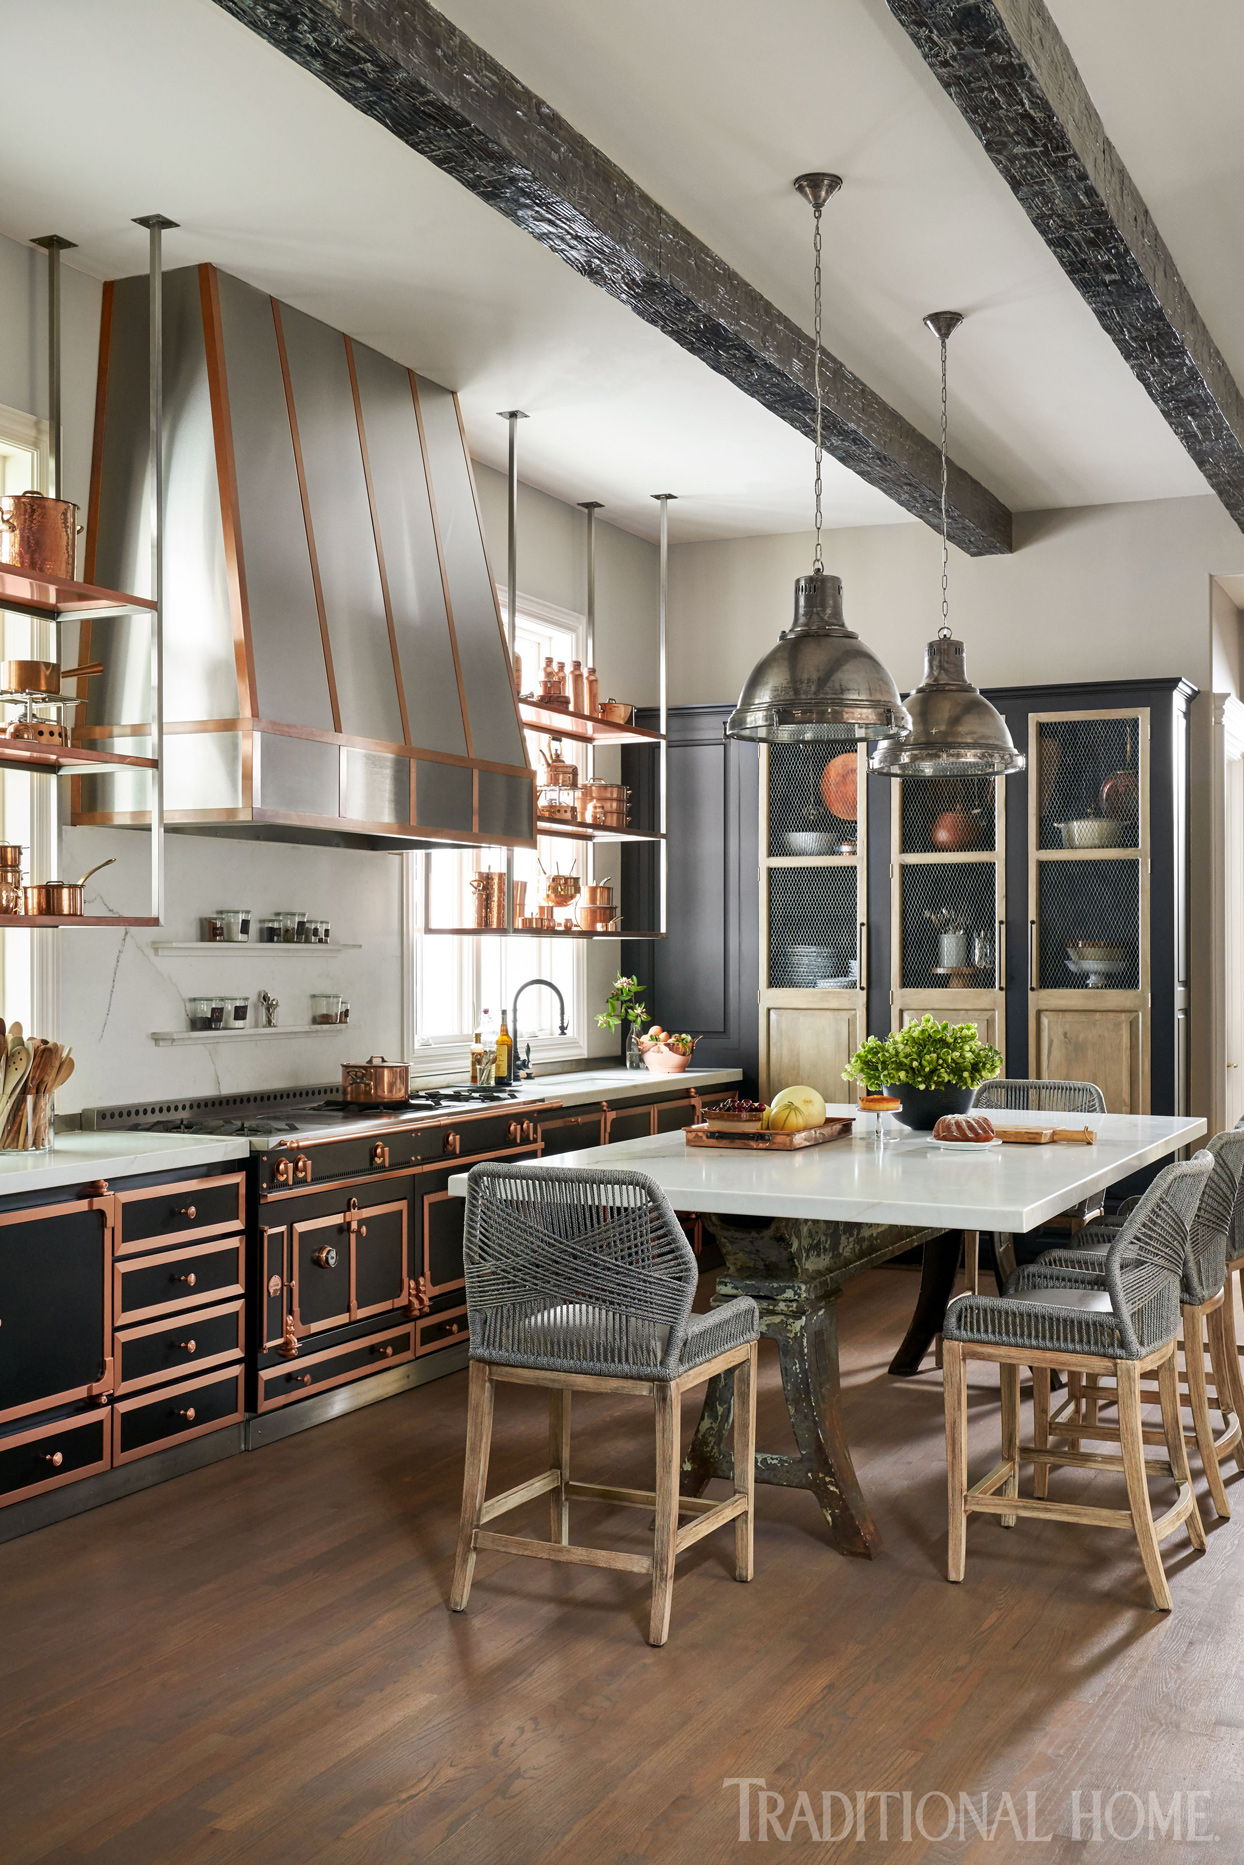 copper trimmed cabinets and hood